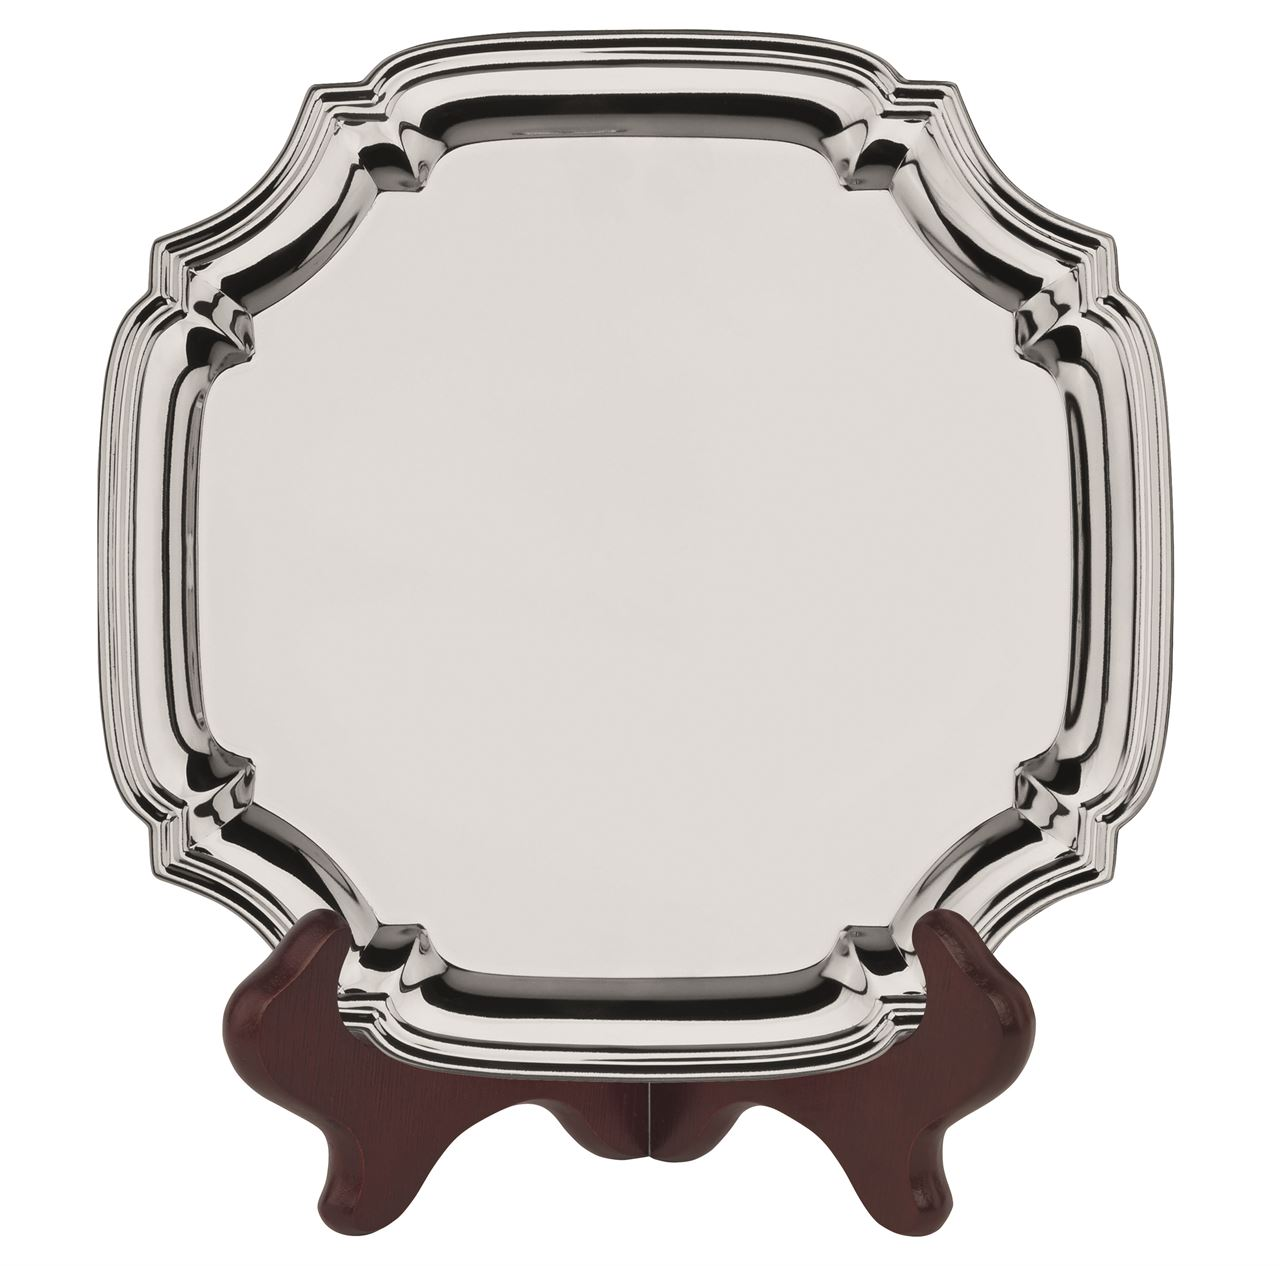 Heavy Gauge Nickel Plated Square Chippendale Tray  - S7